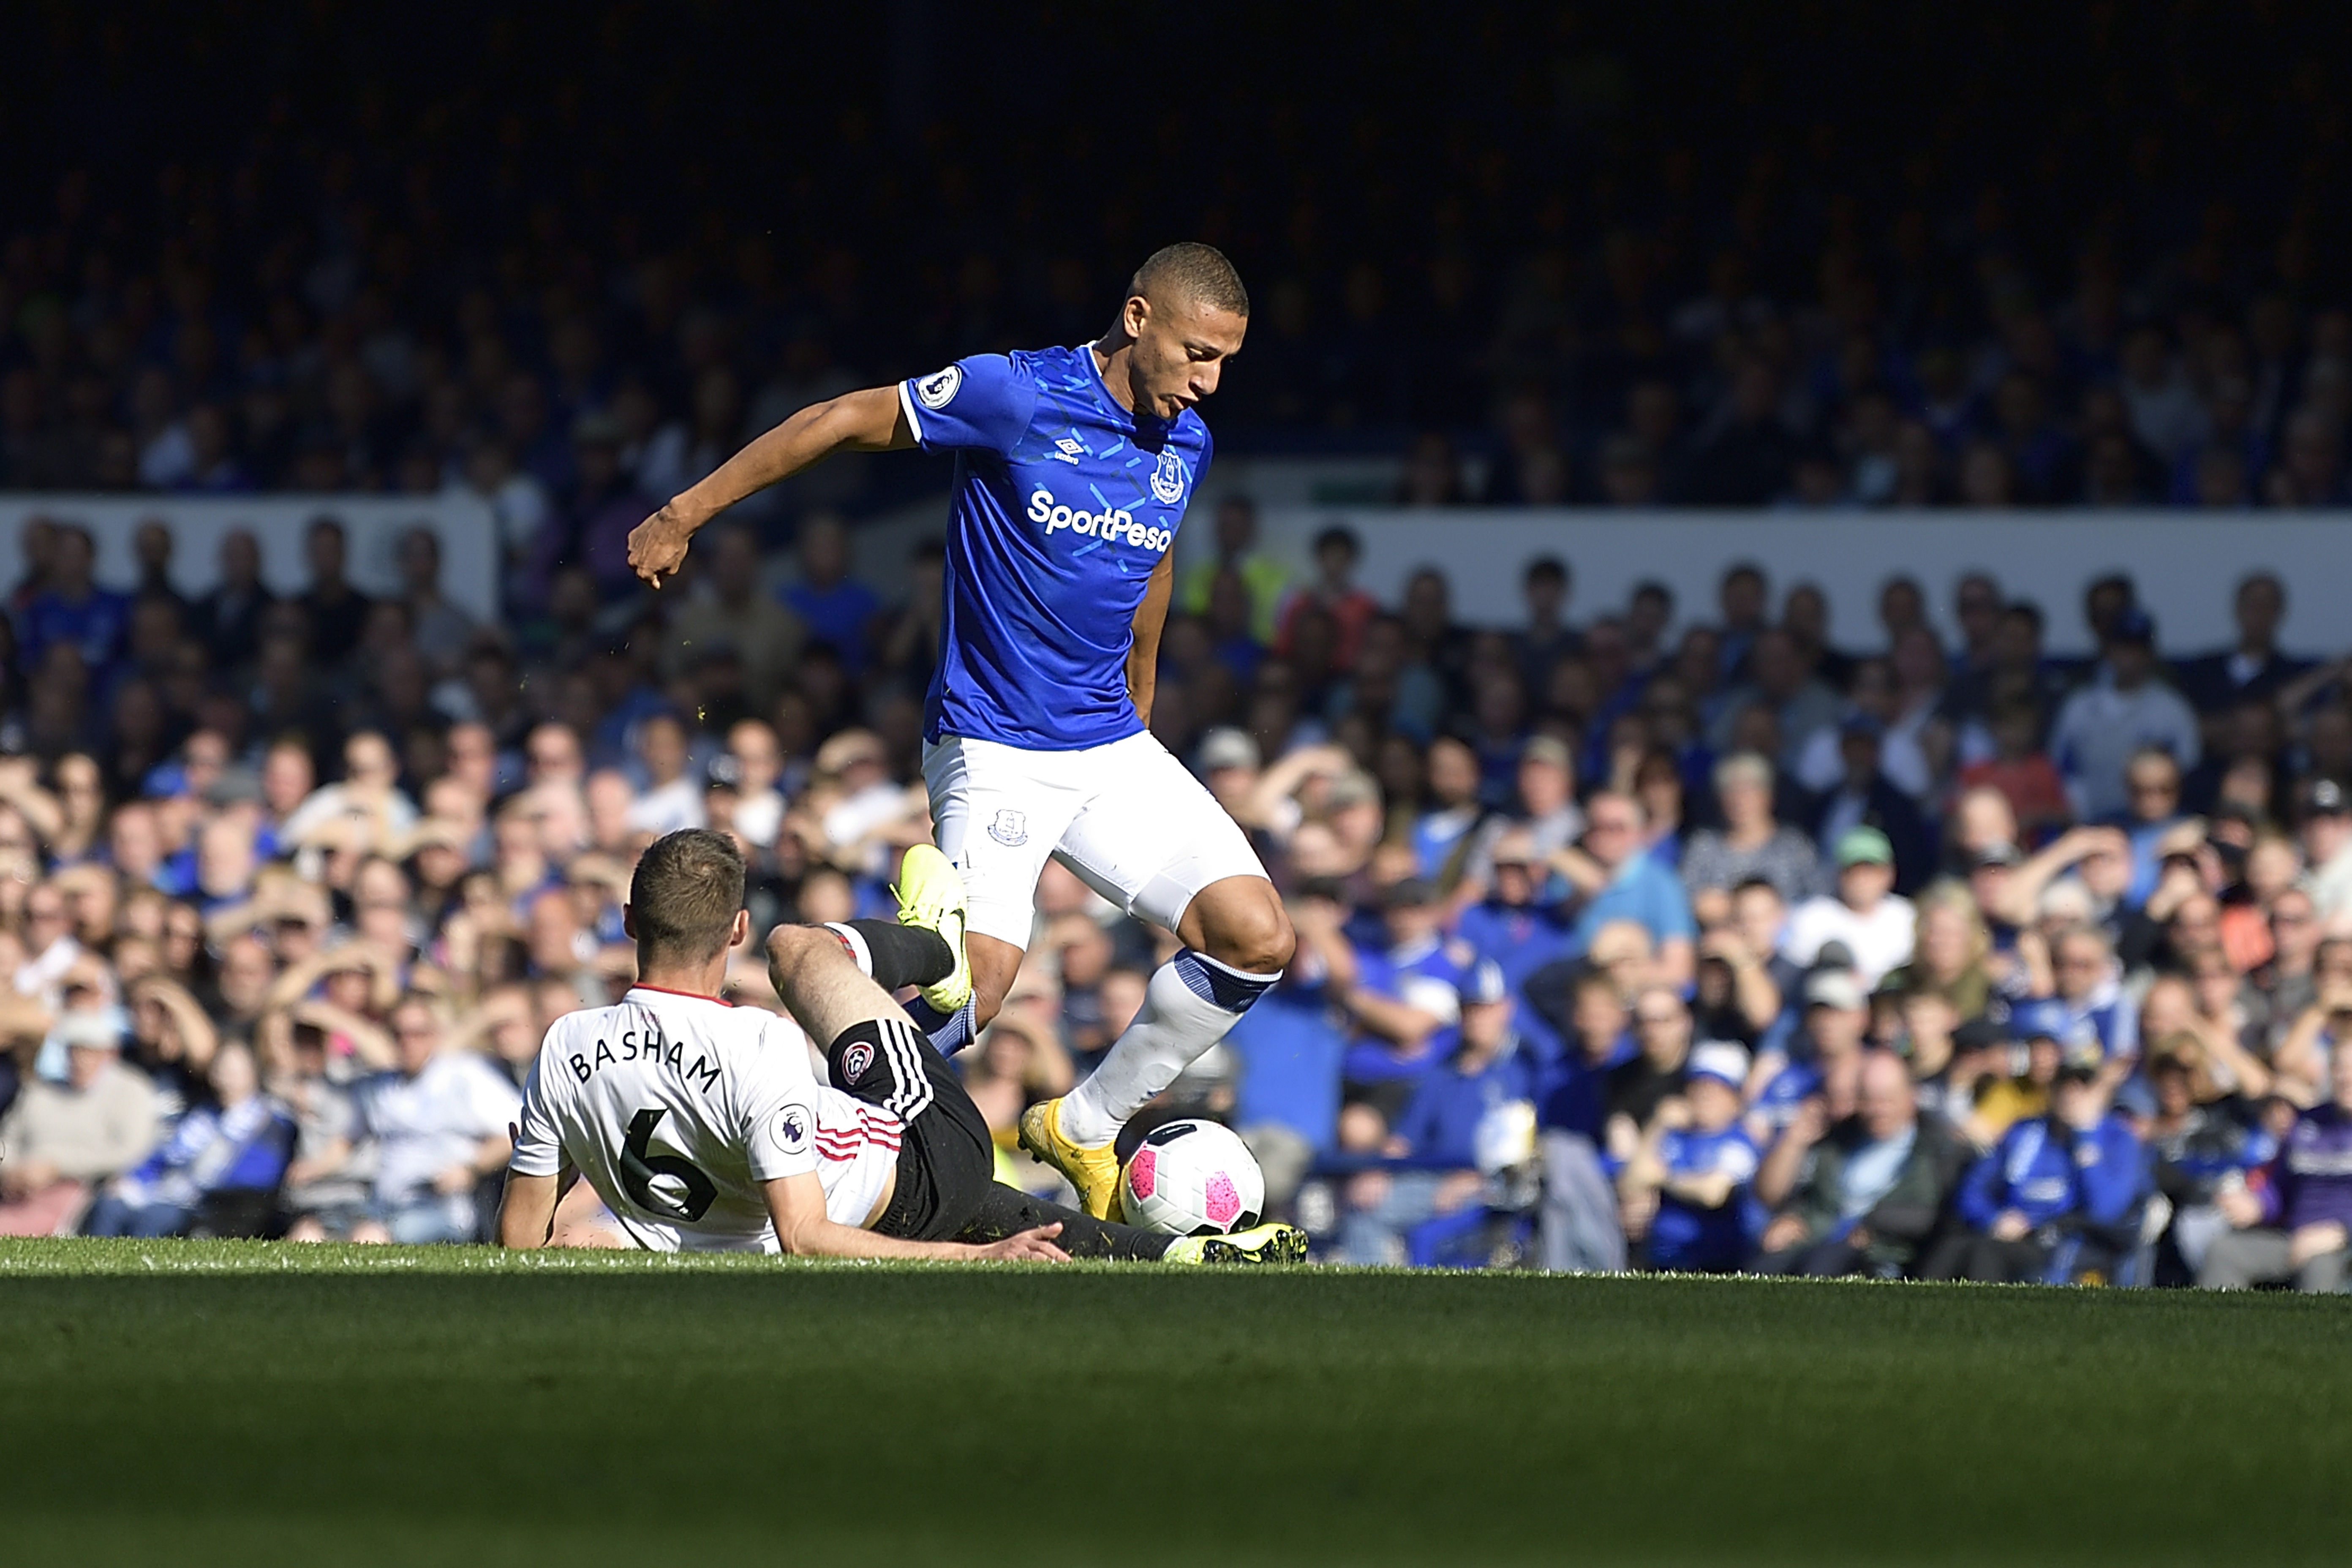 Everton vs Sheffield United: How To Watch & Live Blog